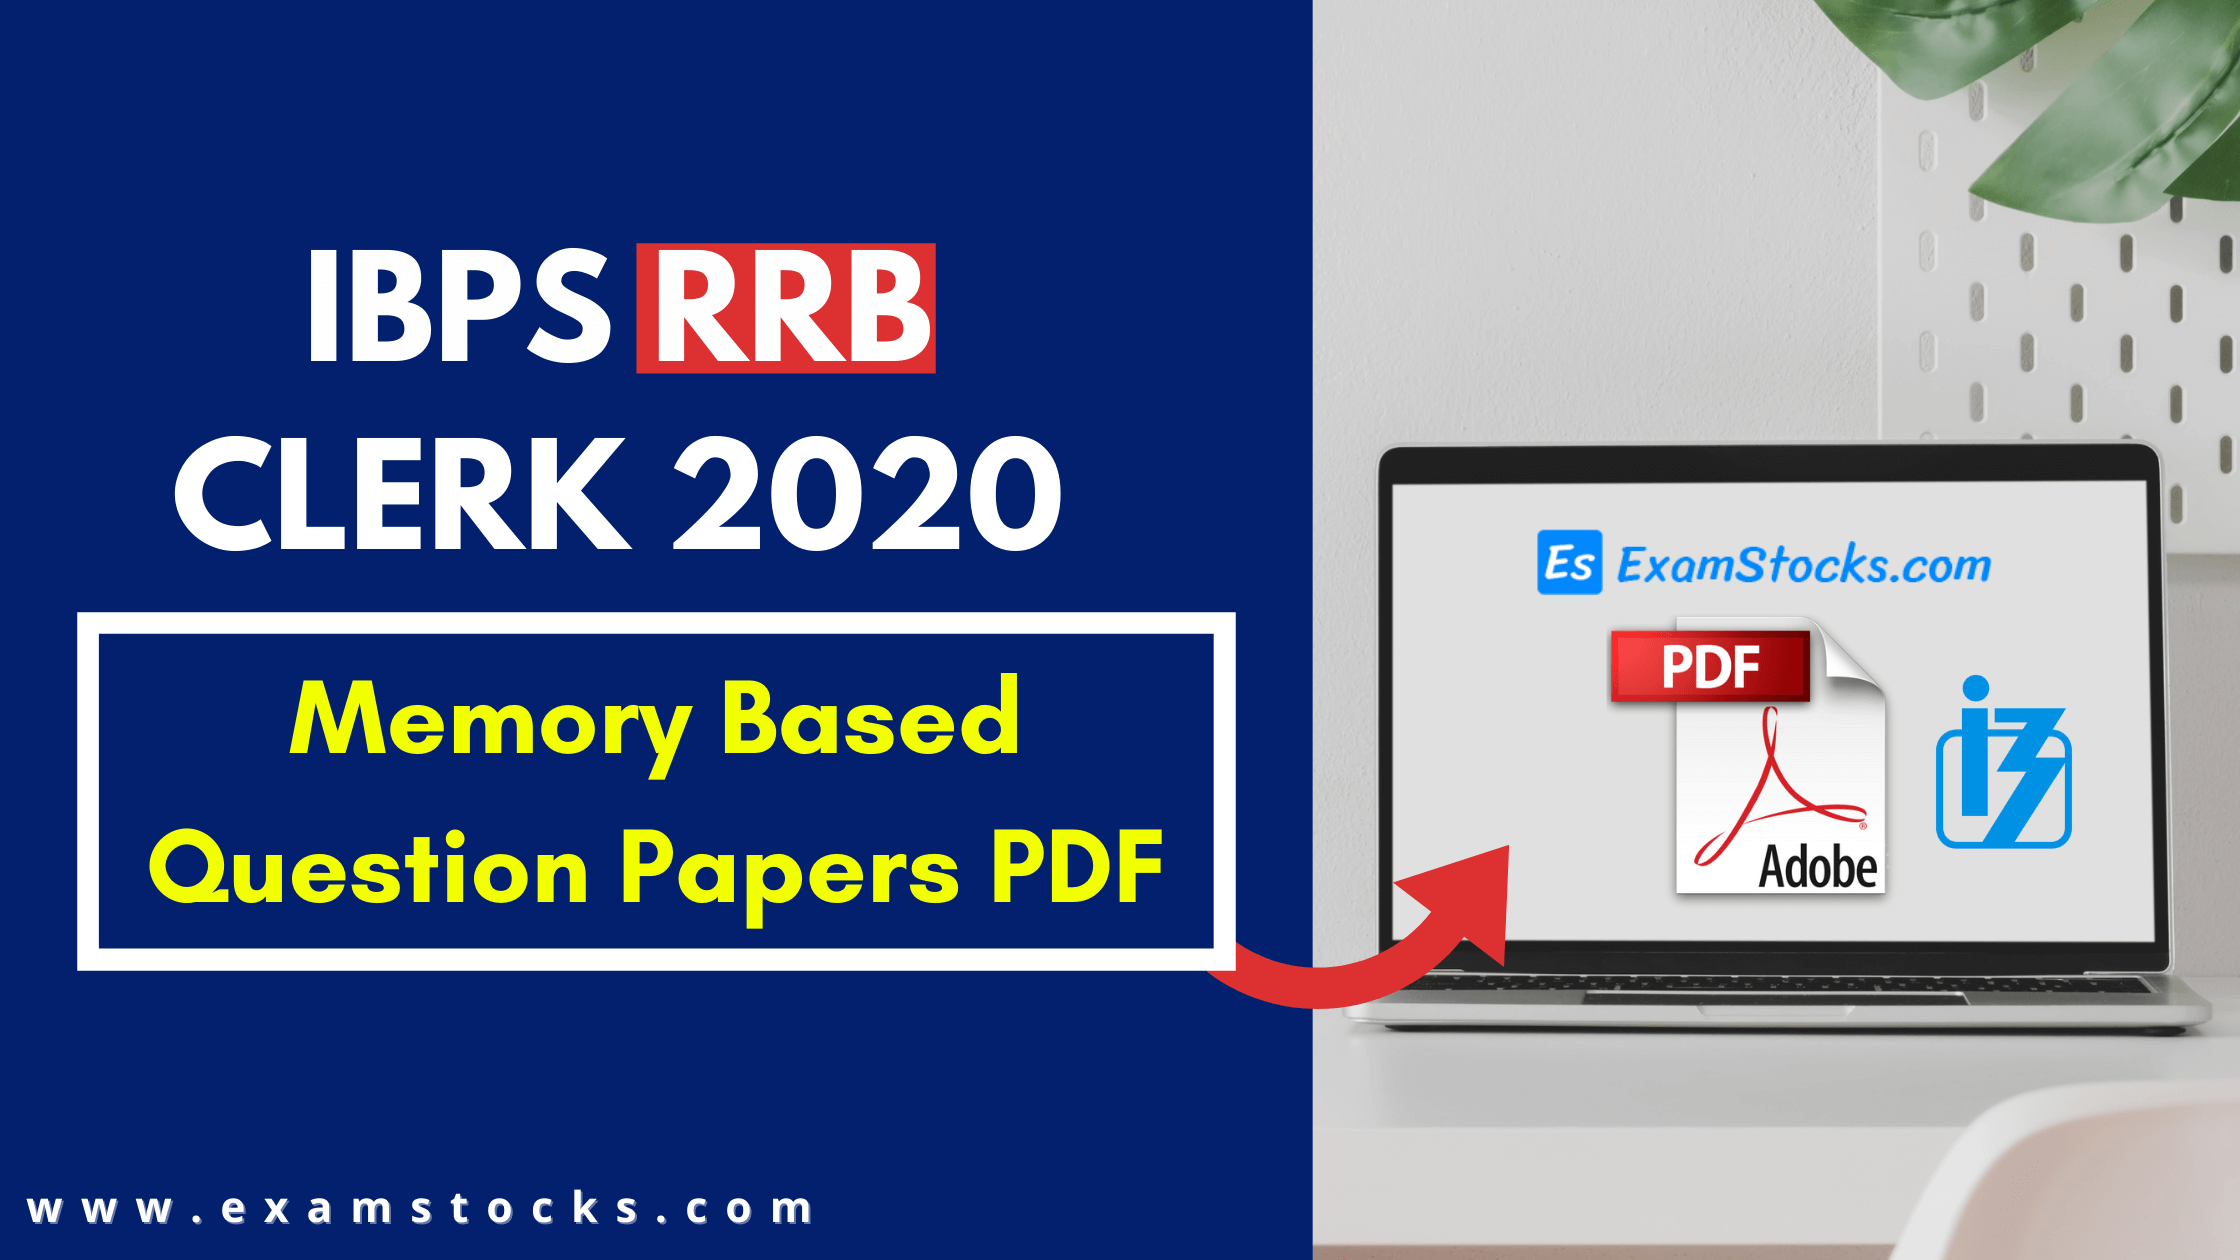 IBPS RRB Clerk 2020 Memory Based Question Papers PDF